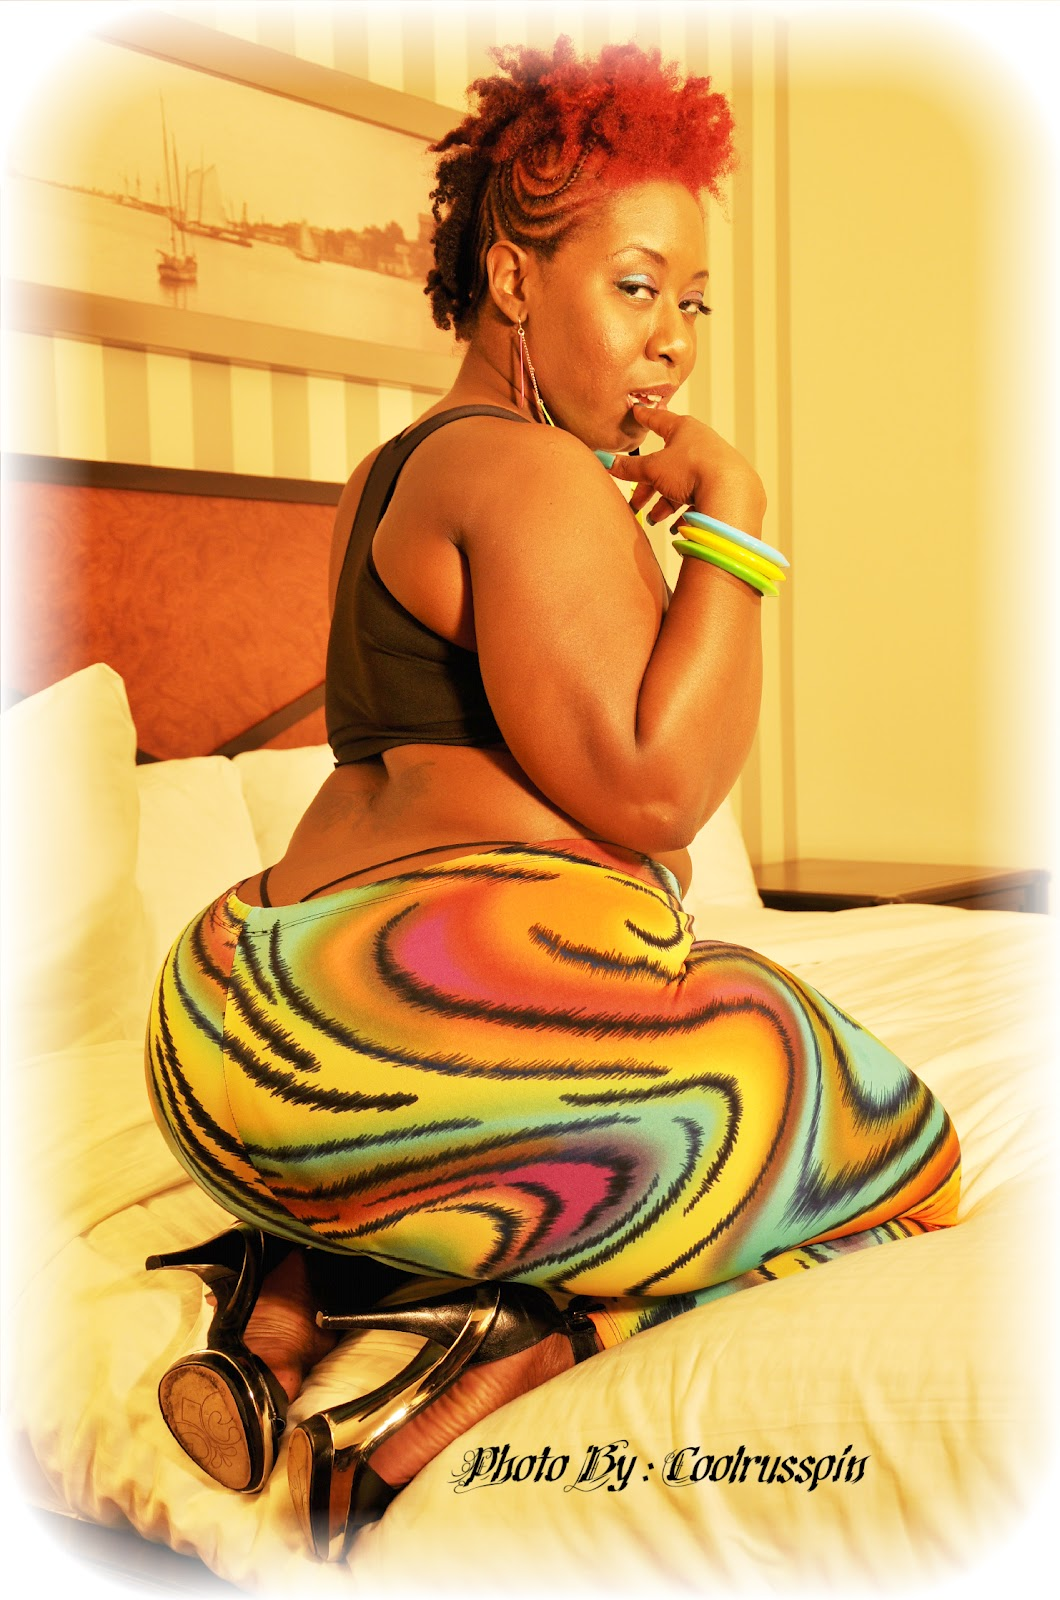 bbw marshae and pinky ass and more ass pornstar galery 6